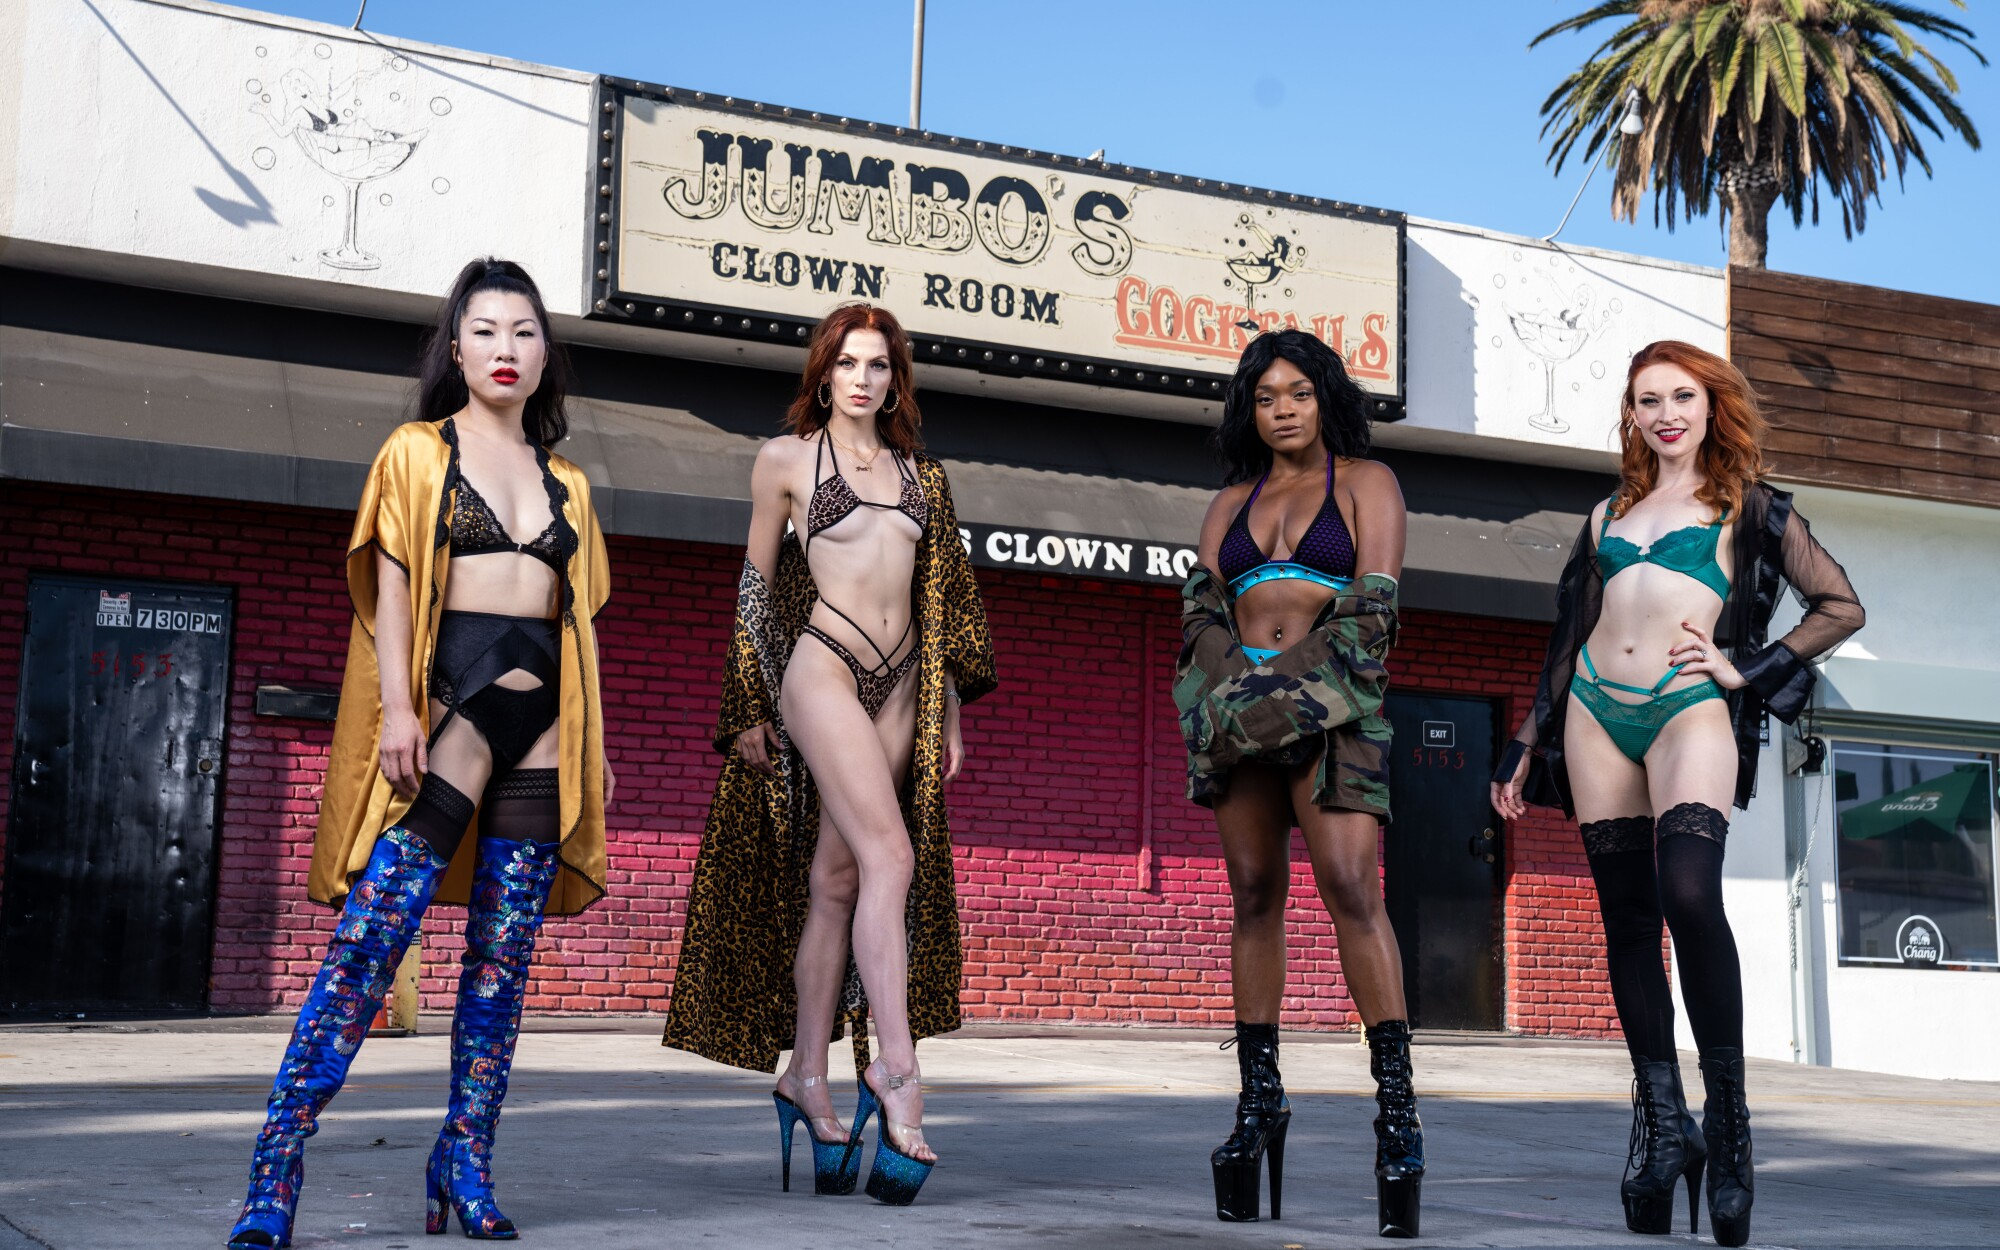 Coco Ono, left, Kitty, Danielle and Reagan in front of Jumbo's Clown Room. The women have moved their dancing online.